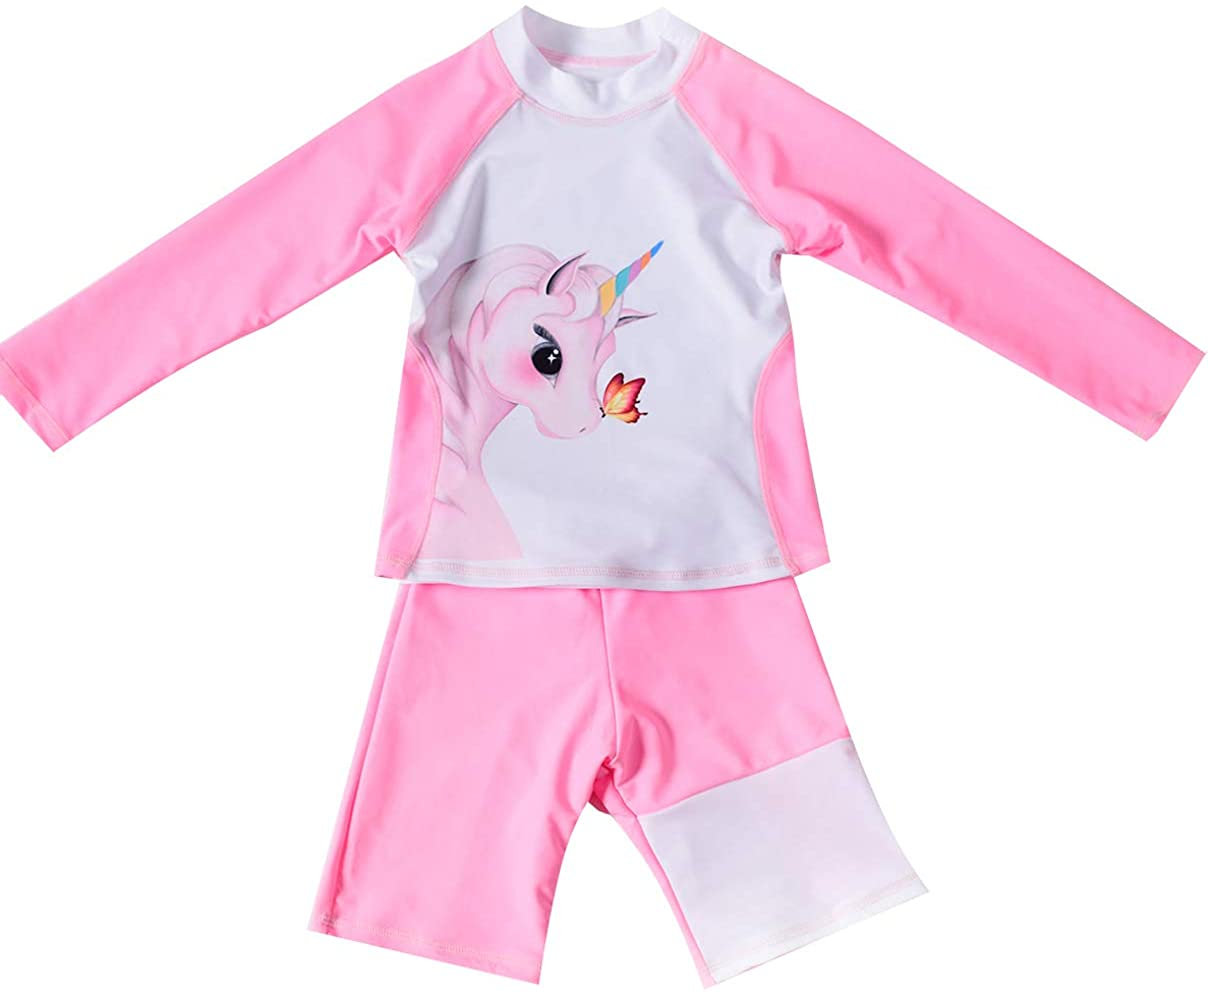 BTPEIHTD Girls Unicorn Two Piece Rash Guard Swimsuits Long Sleeve Tankini Swimwear